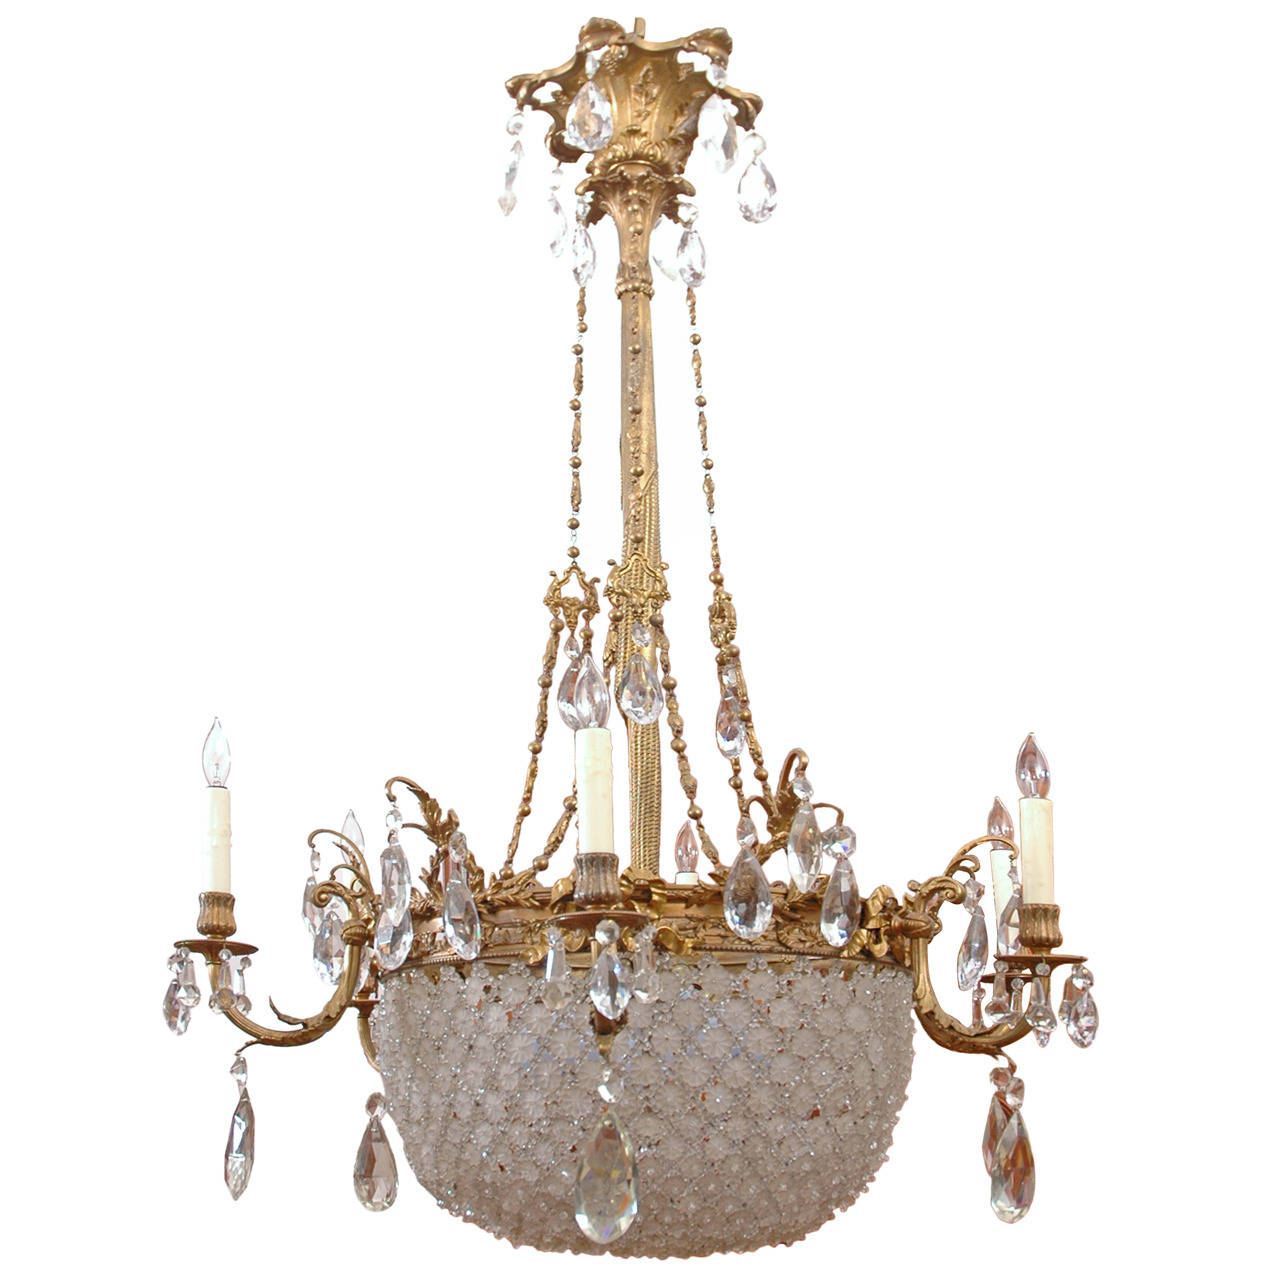 Baccarat style bronze and crystal chandelier bonnin ashley large baccarat inspired belle poque leaded cut glass and crystal chandelier aloadofball Choice Image